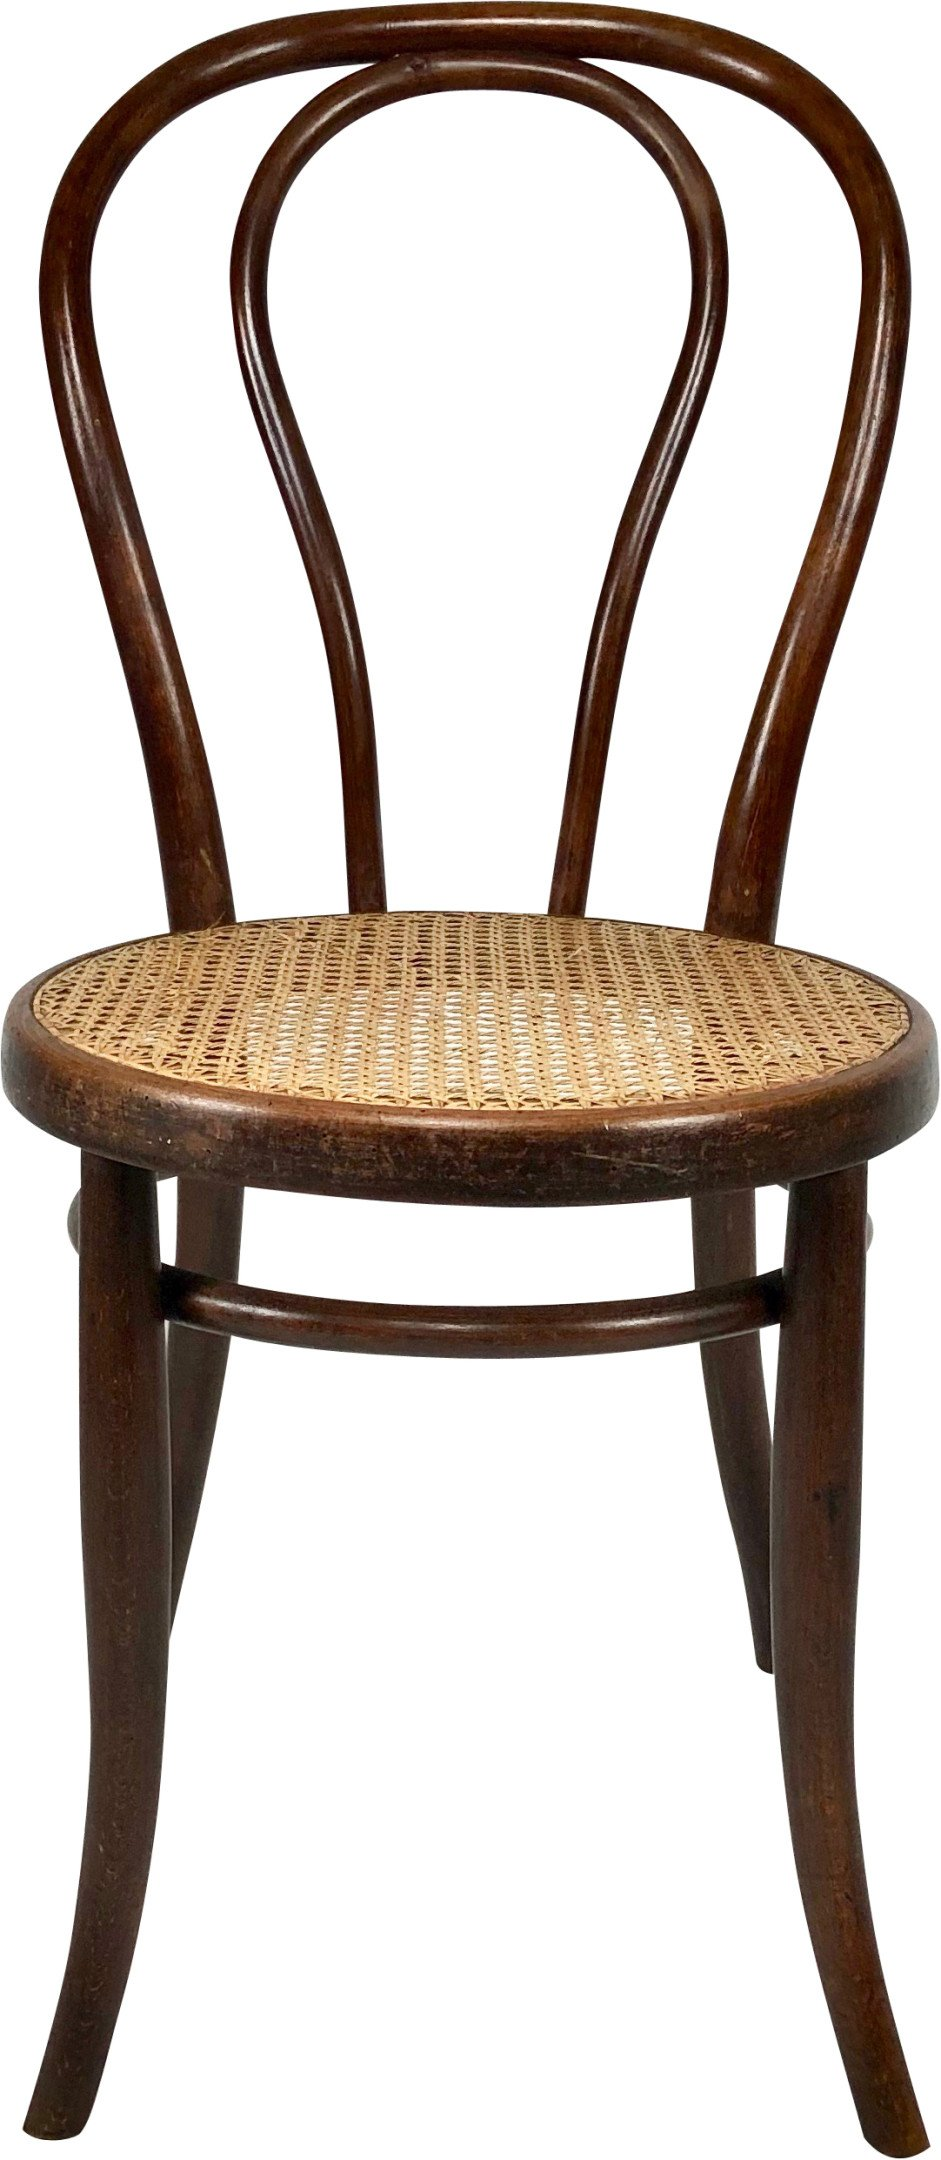 Chair no. 14, Thonet, Germany, early 20th C.